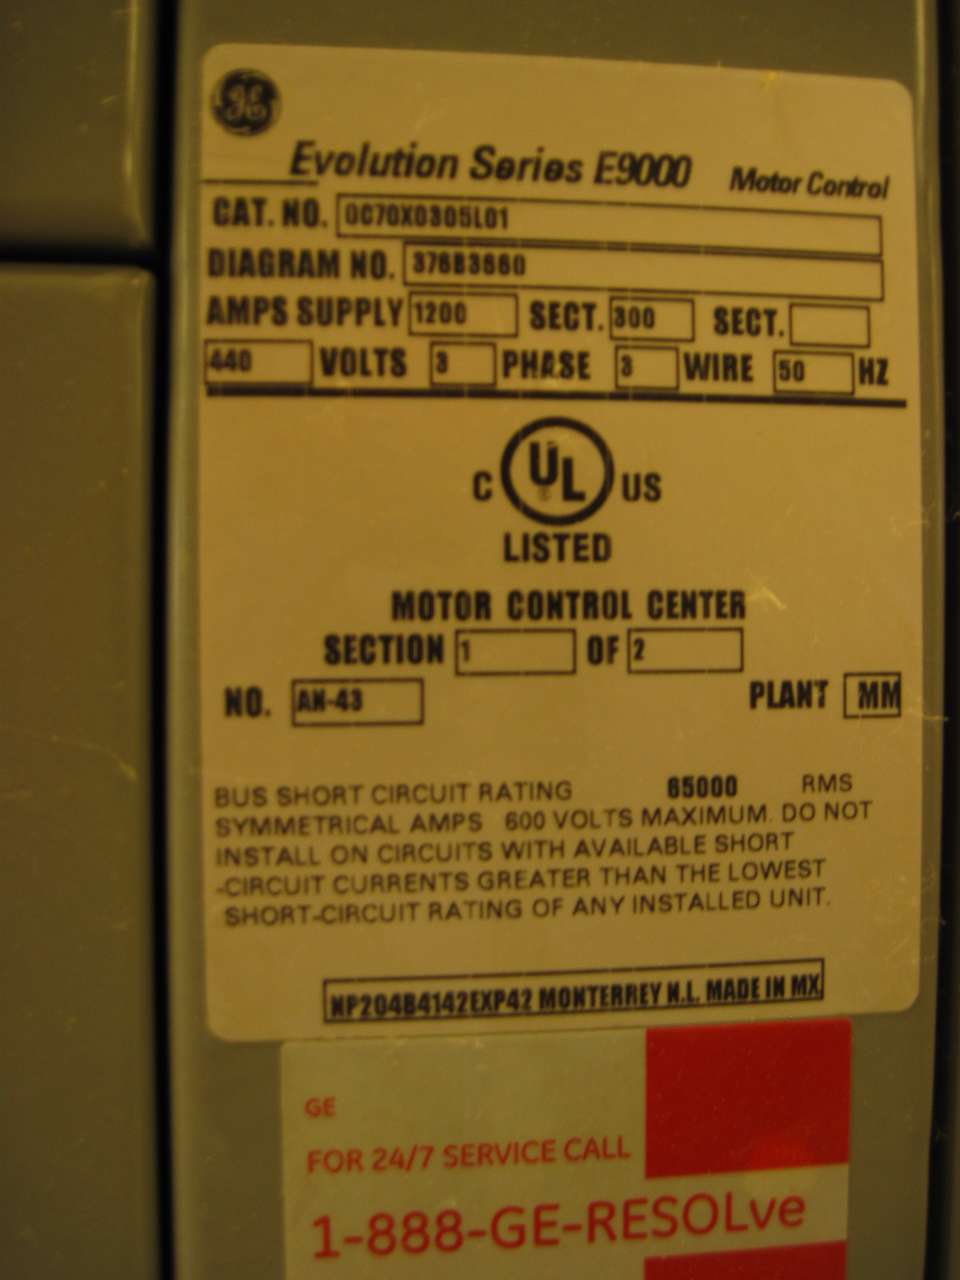 Ge Evolution Series E9000 Motor Control Center 440v 3 Phase Wiring Diagram The Schematic Lot 34